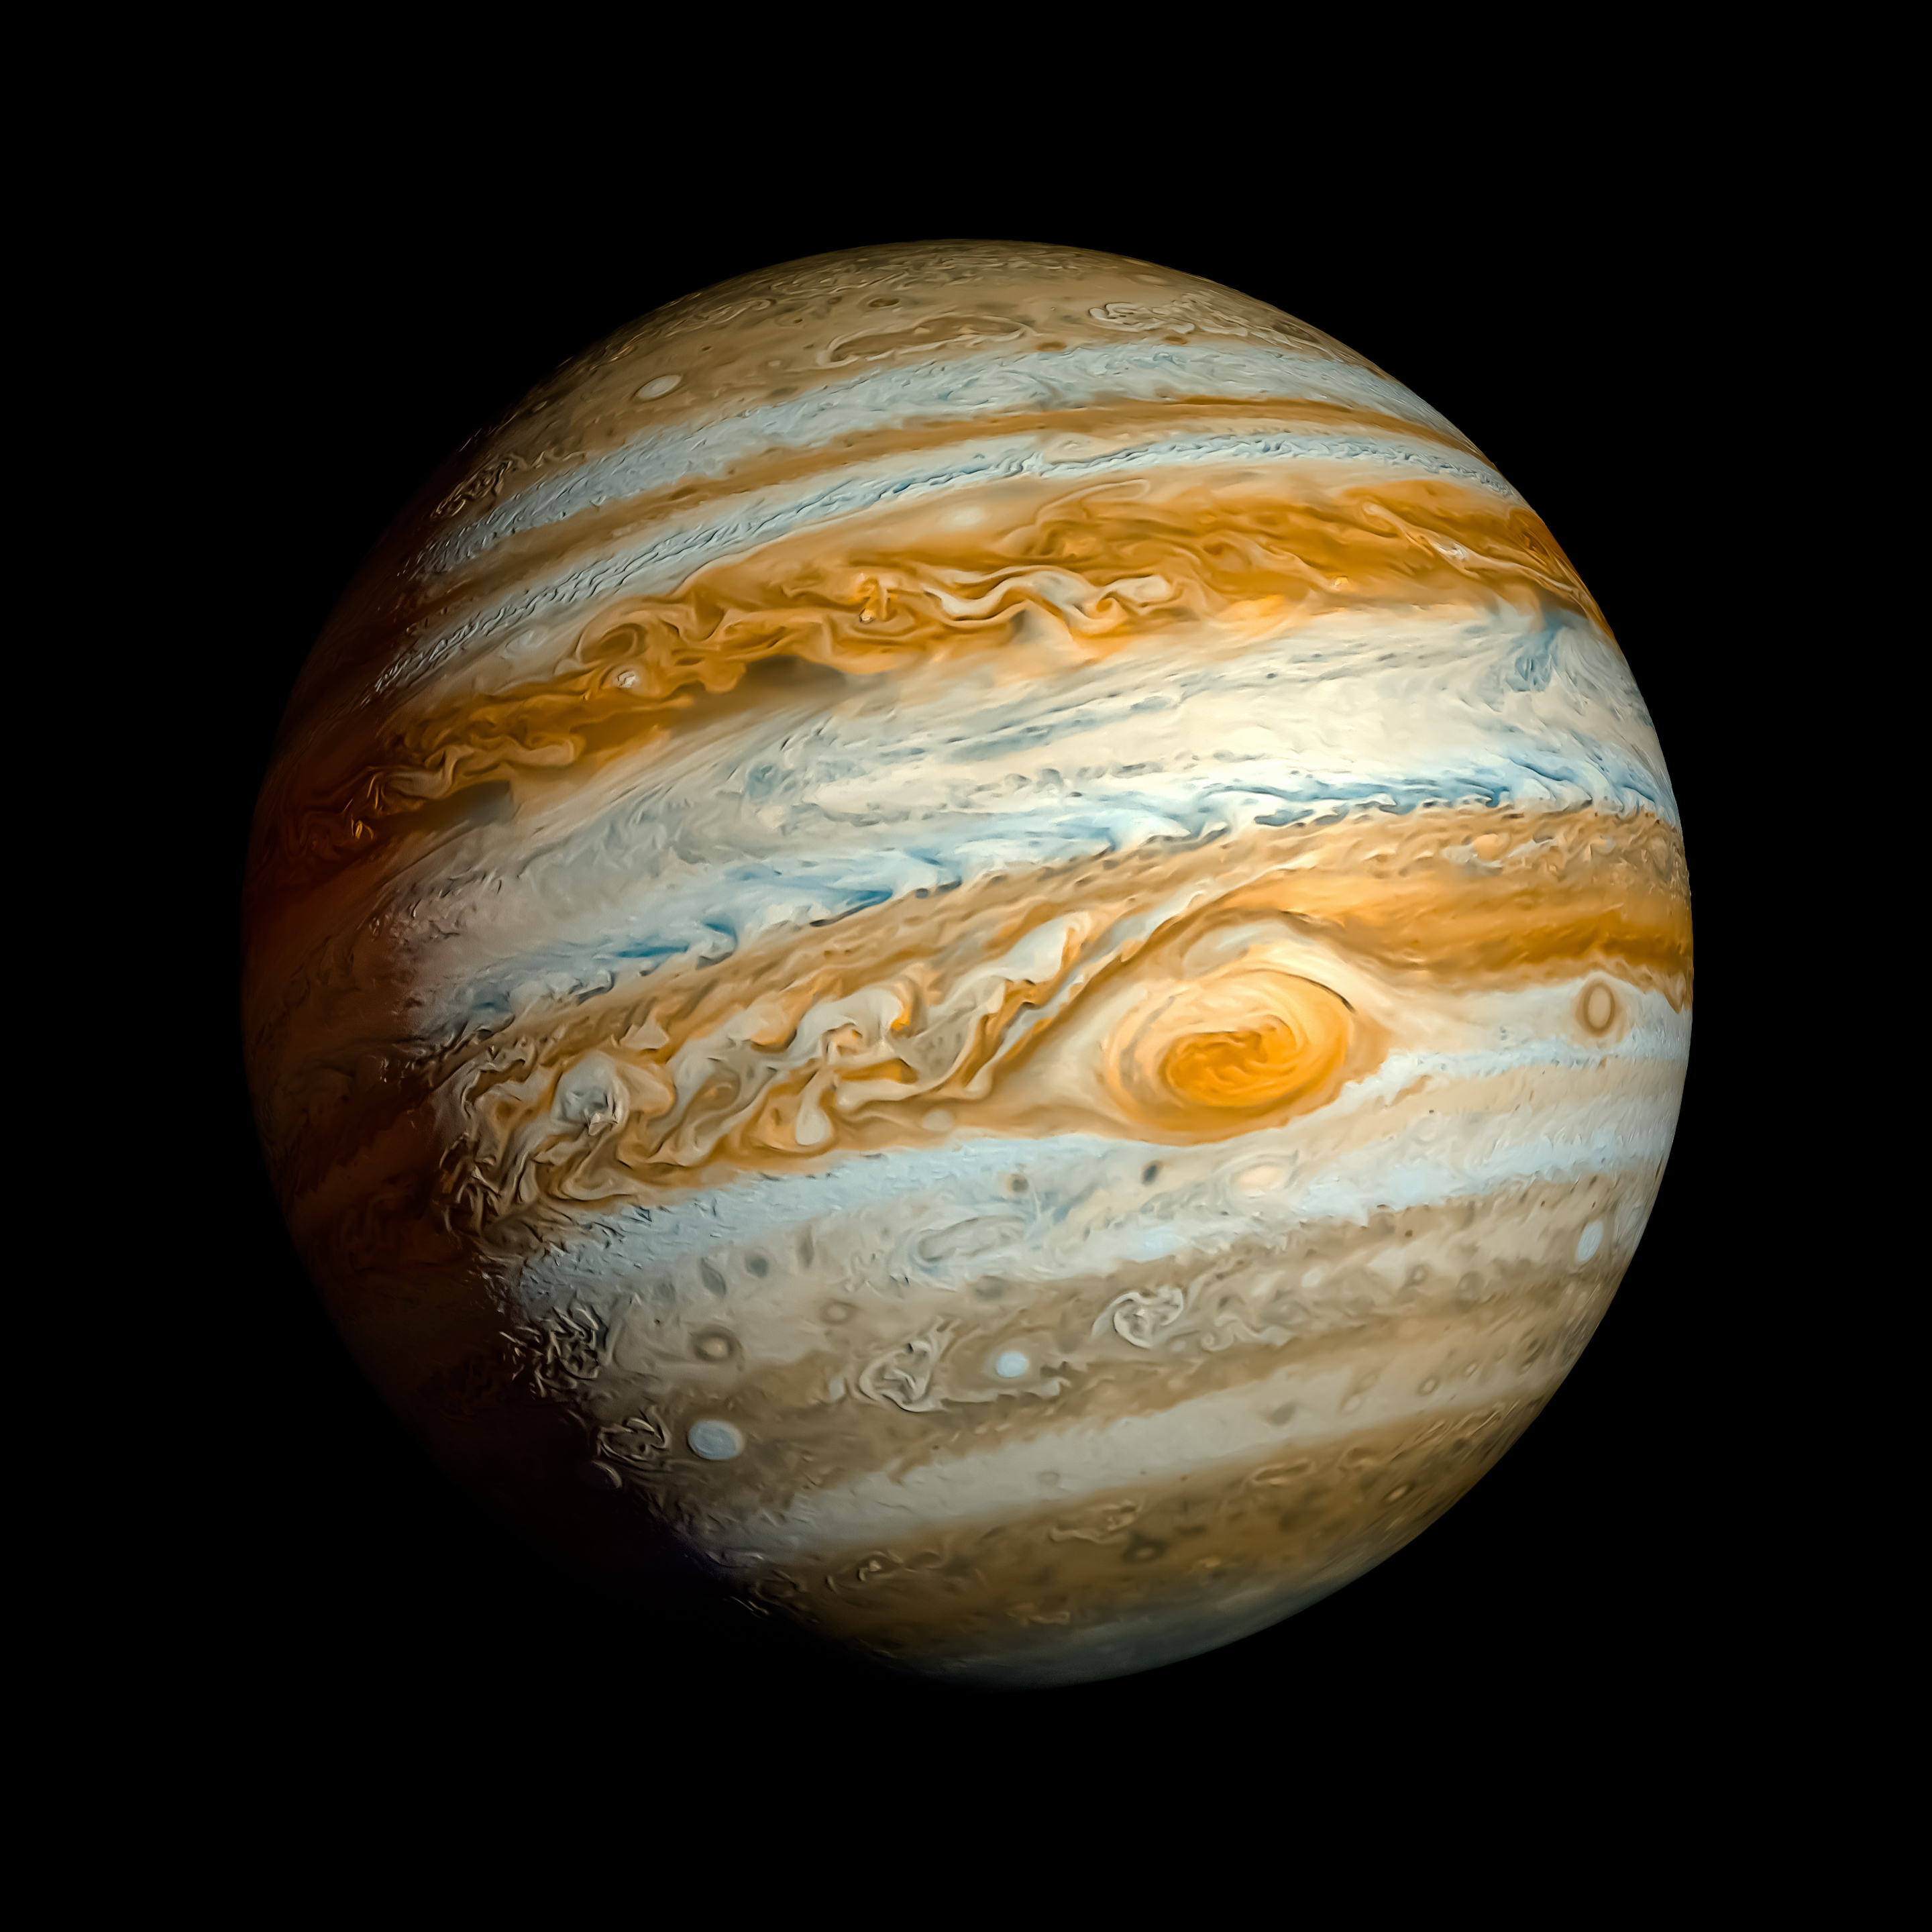 Jupiter Full HD Quality Picture | Dictionary of Dreams